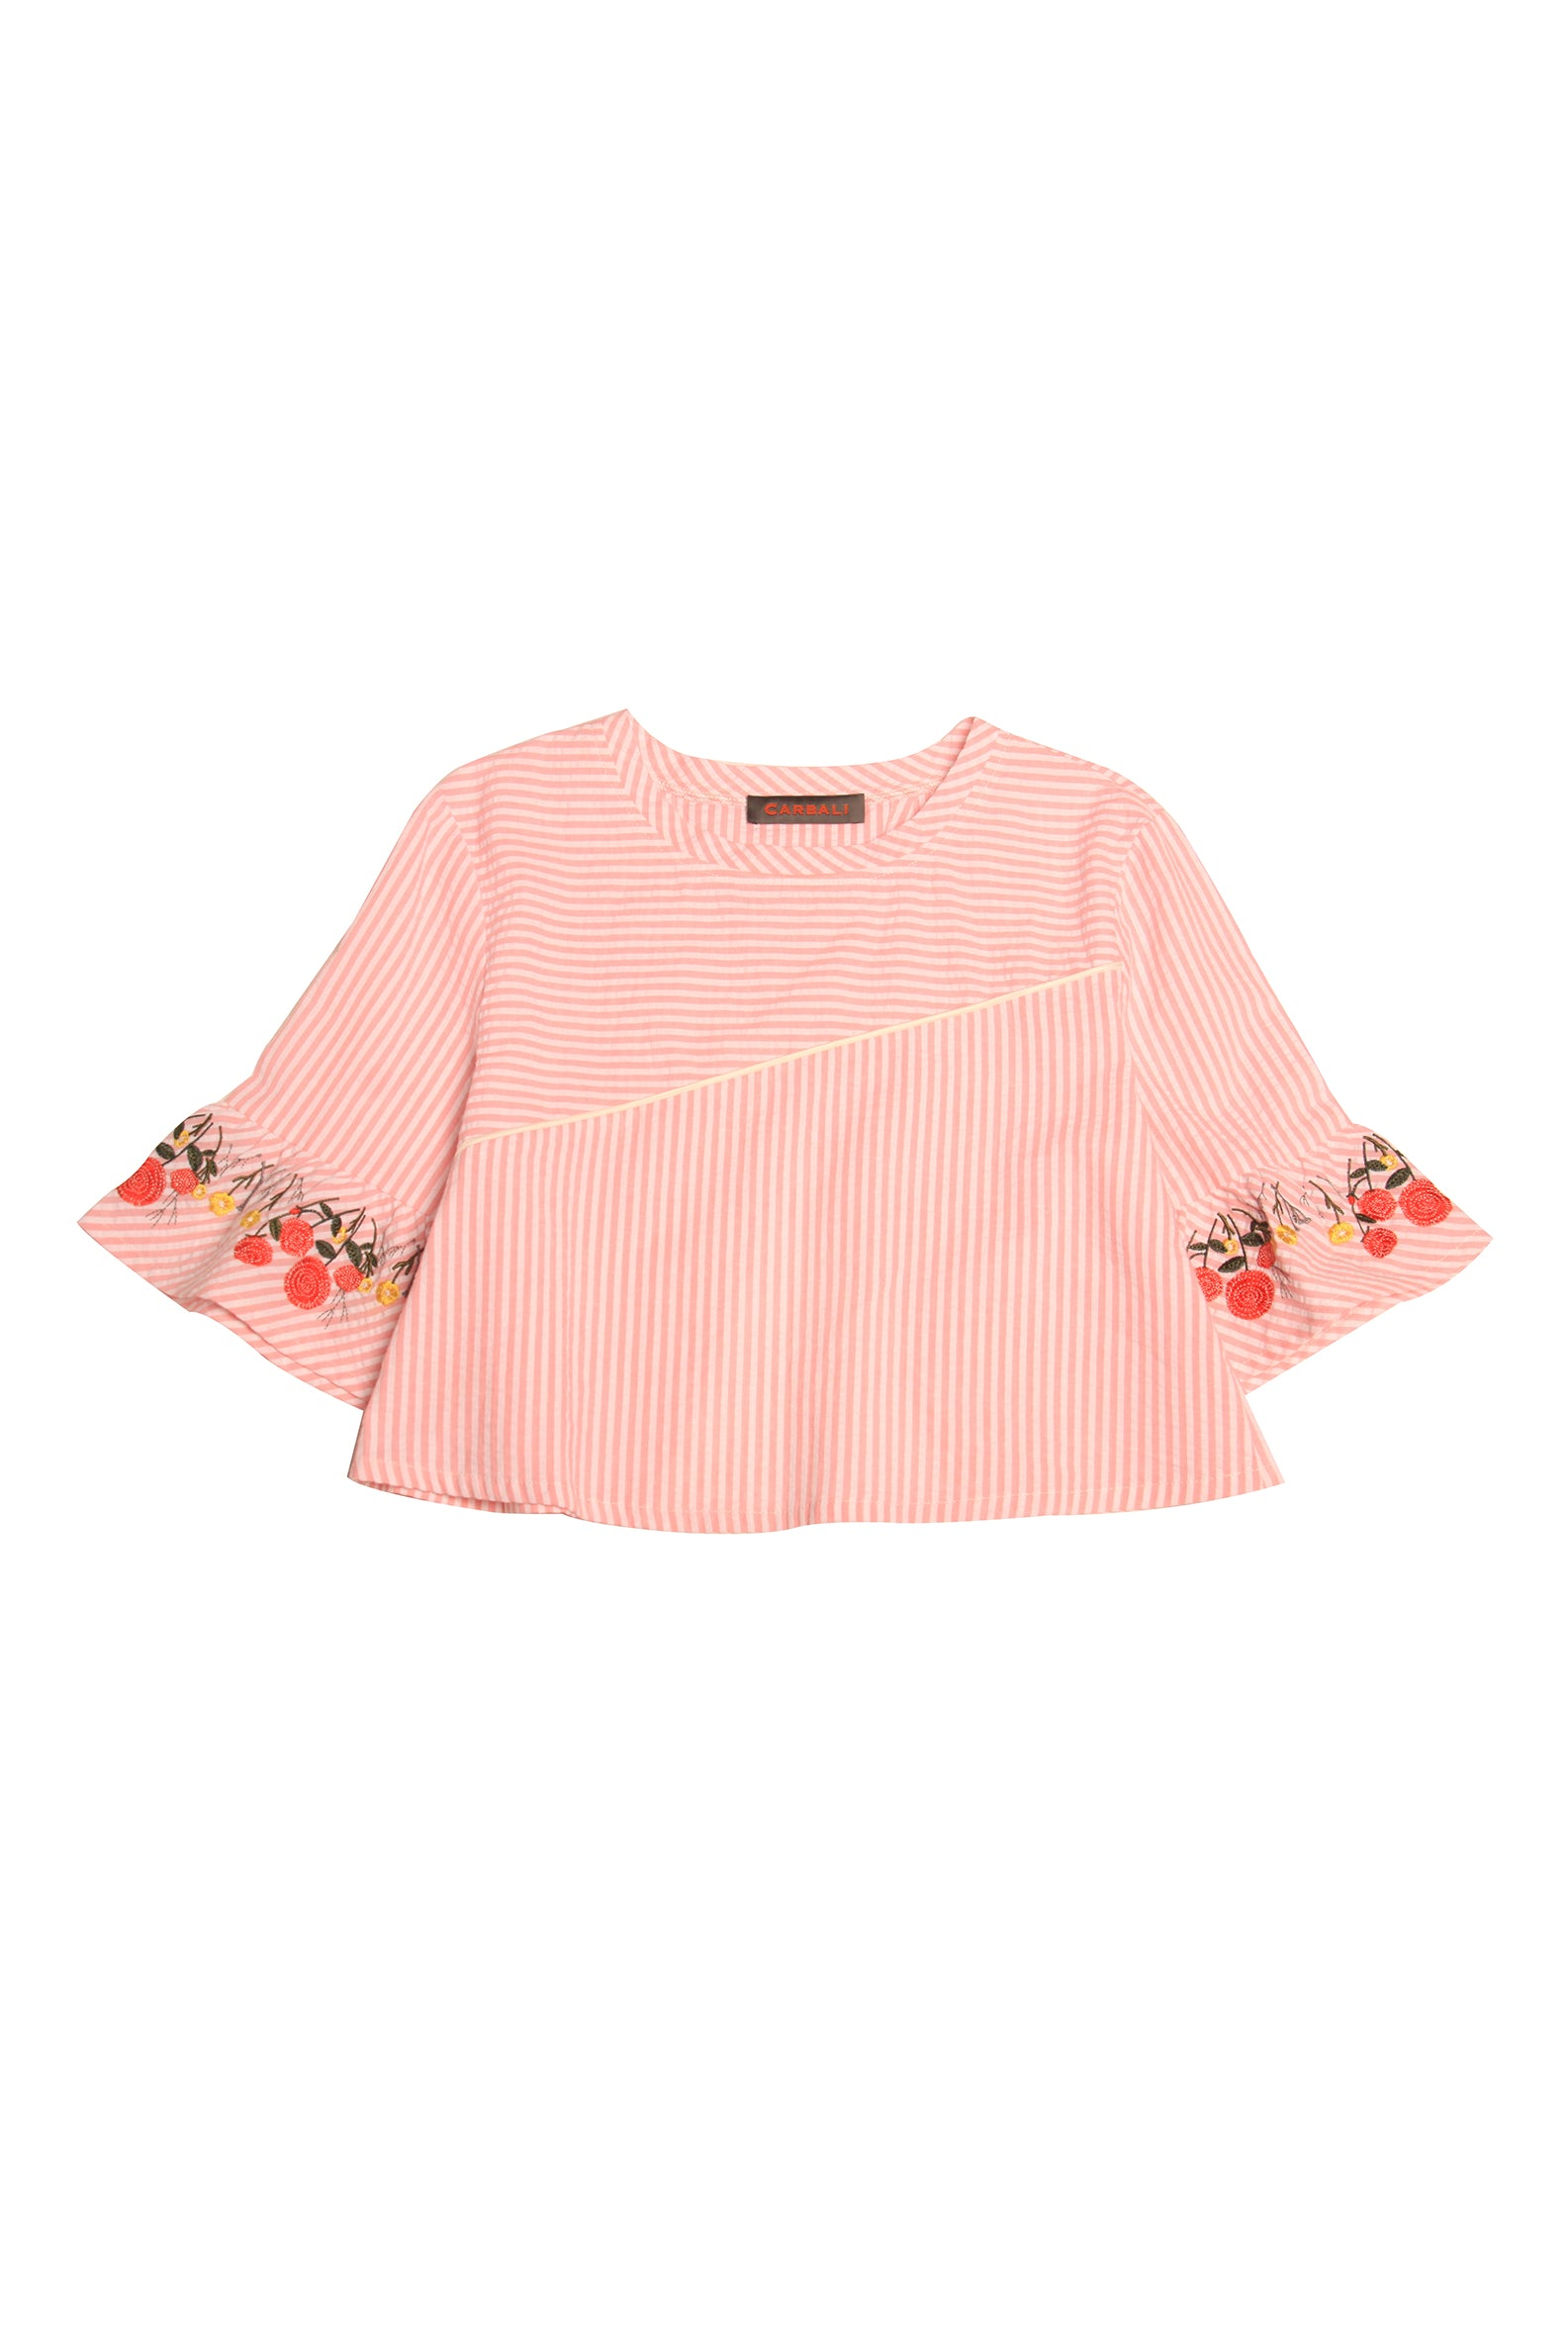 Ruffle Sleeve Top with Flower Embroidery